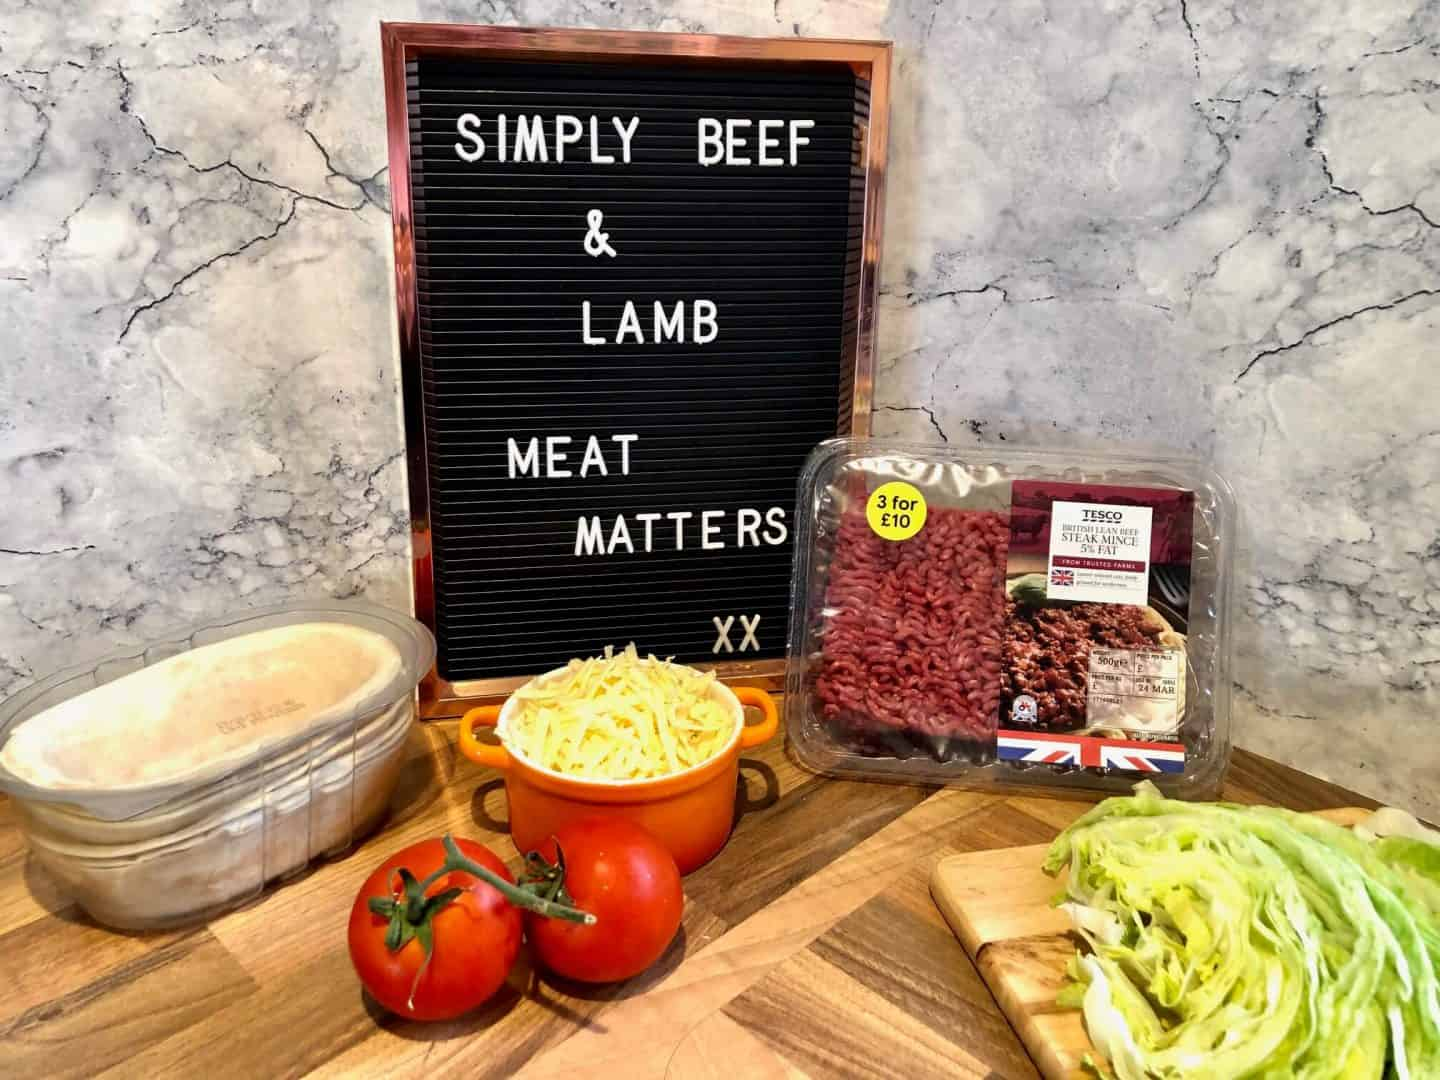 #meatmatters challenge recipe for tacos